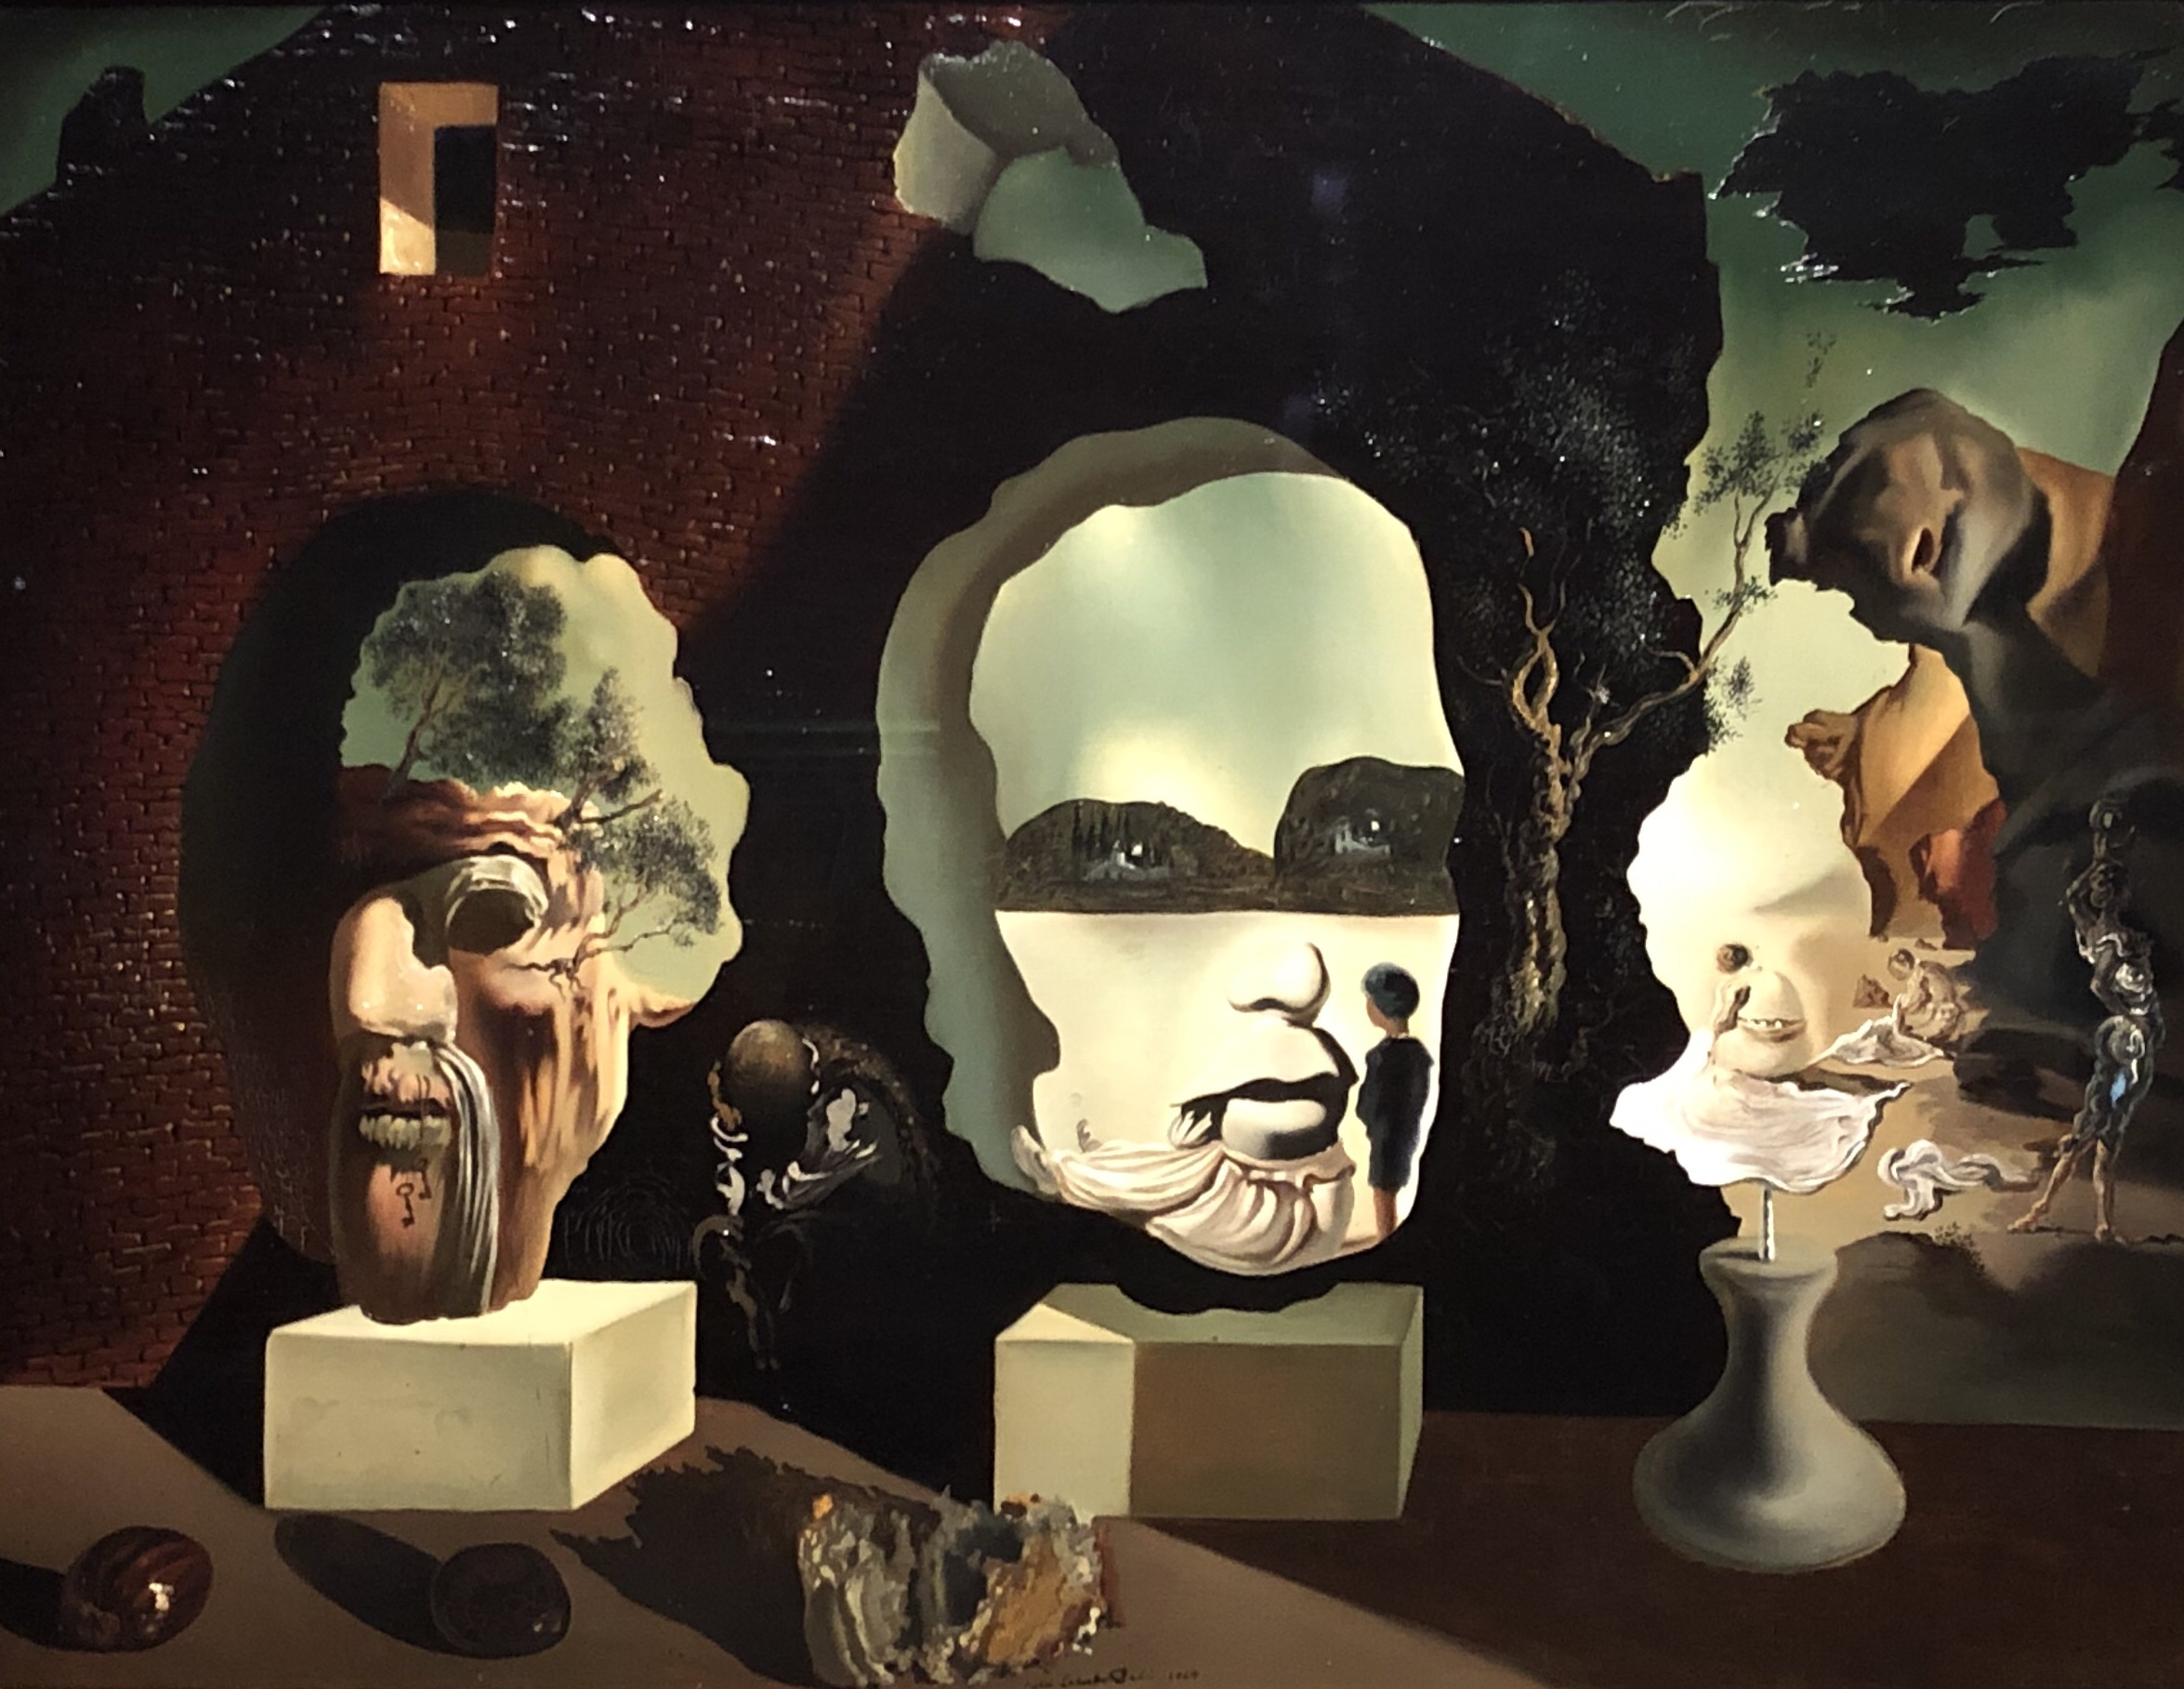 Dali's three ages